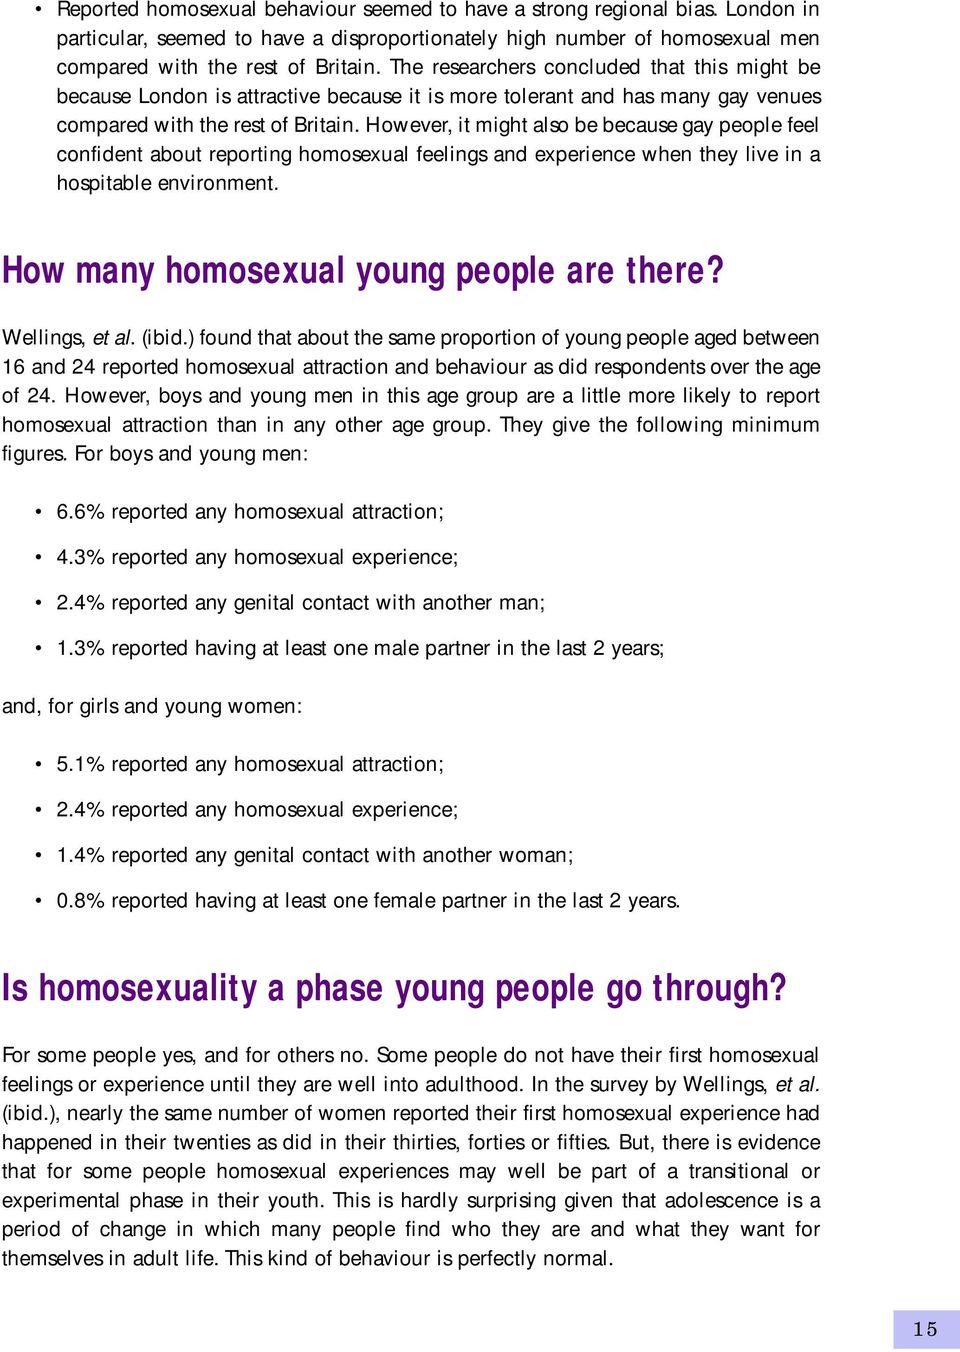 However, it might also be because gay people feel confident about reporting homosexual feelings and experience when they live in a hospitable environment. How many homosexual young people are there?